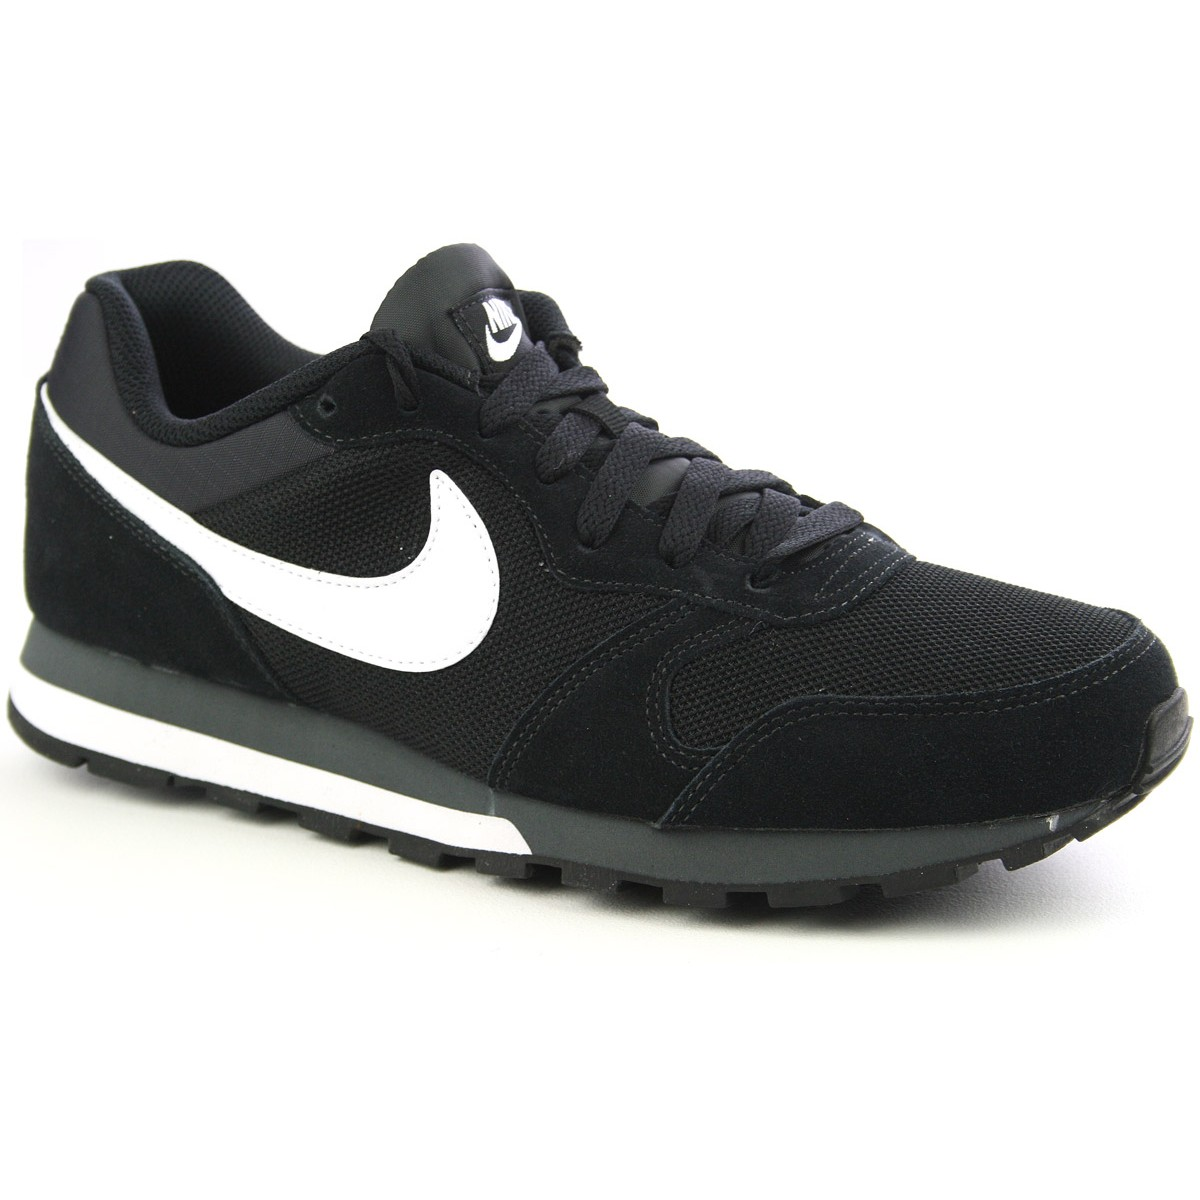 official photos 87841 41053 CHAUSSURES NIKE MD RUNNER 2 +